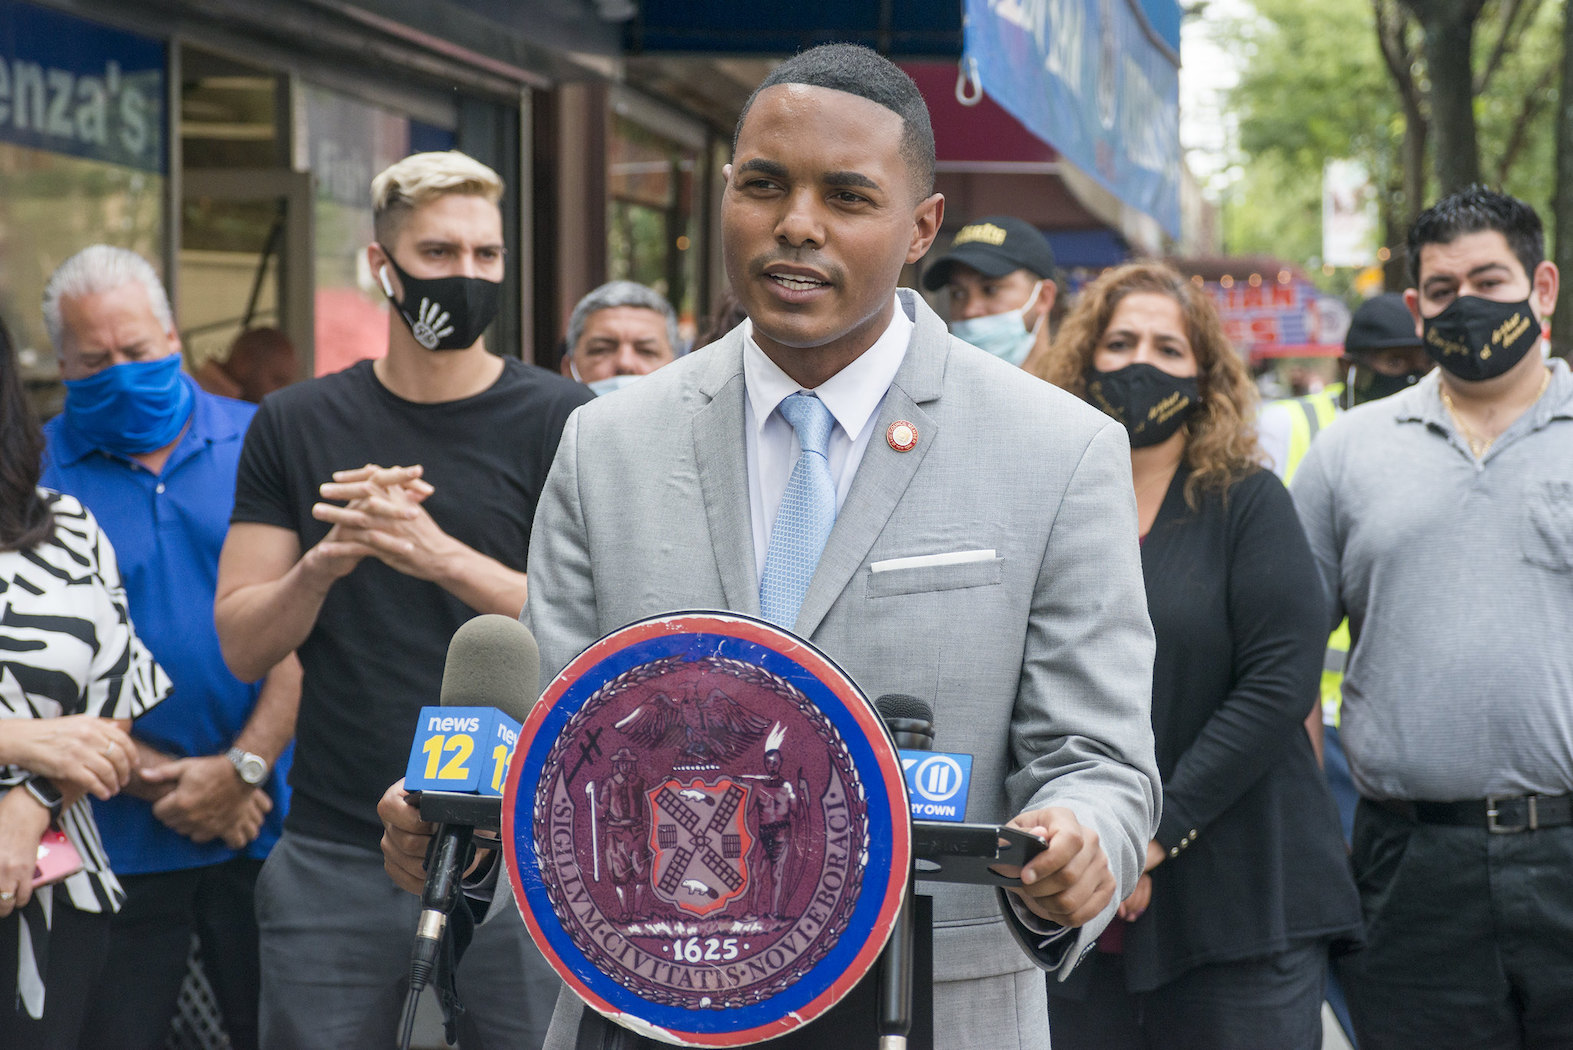 Council Member Ritchie Torres has opened up about his struggles with mental health.